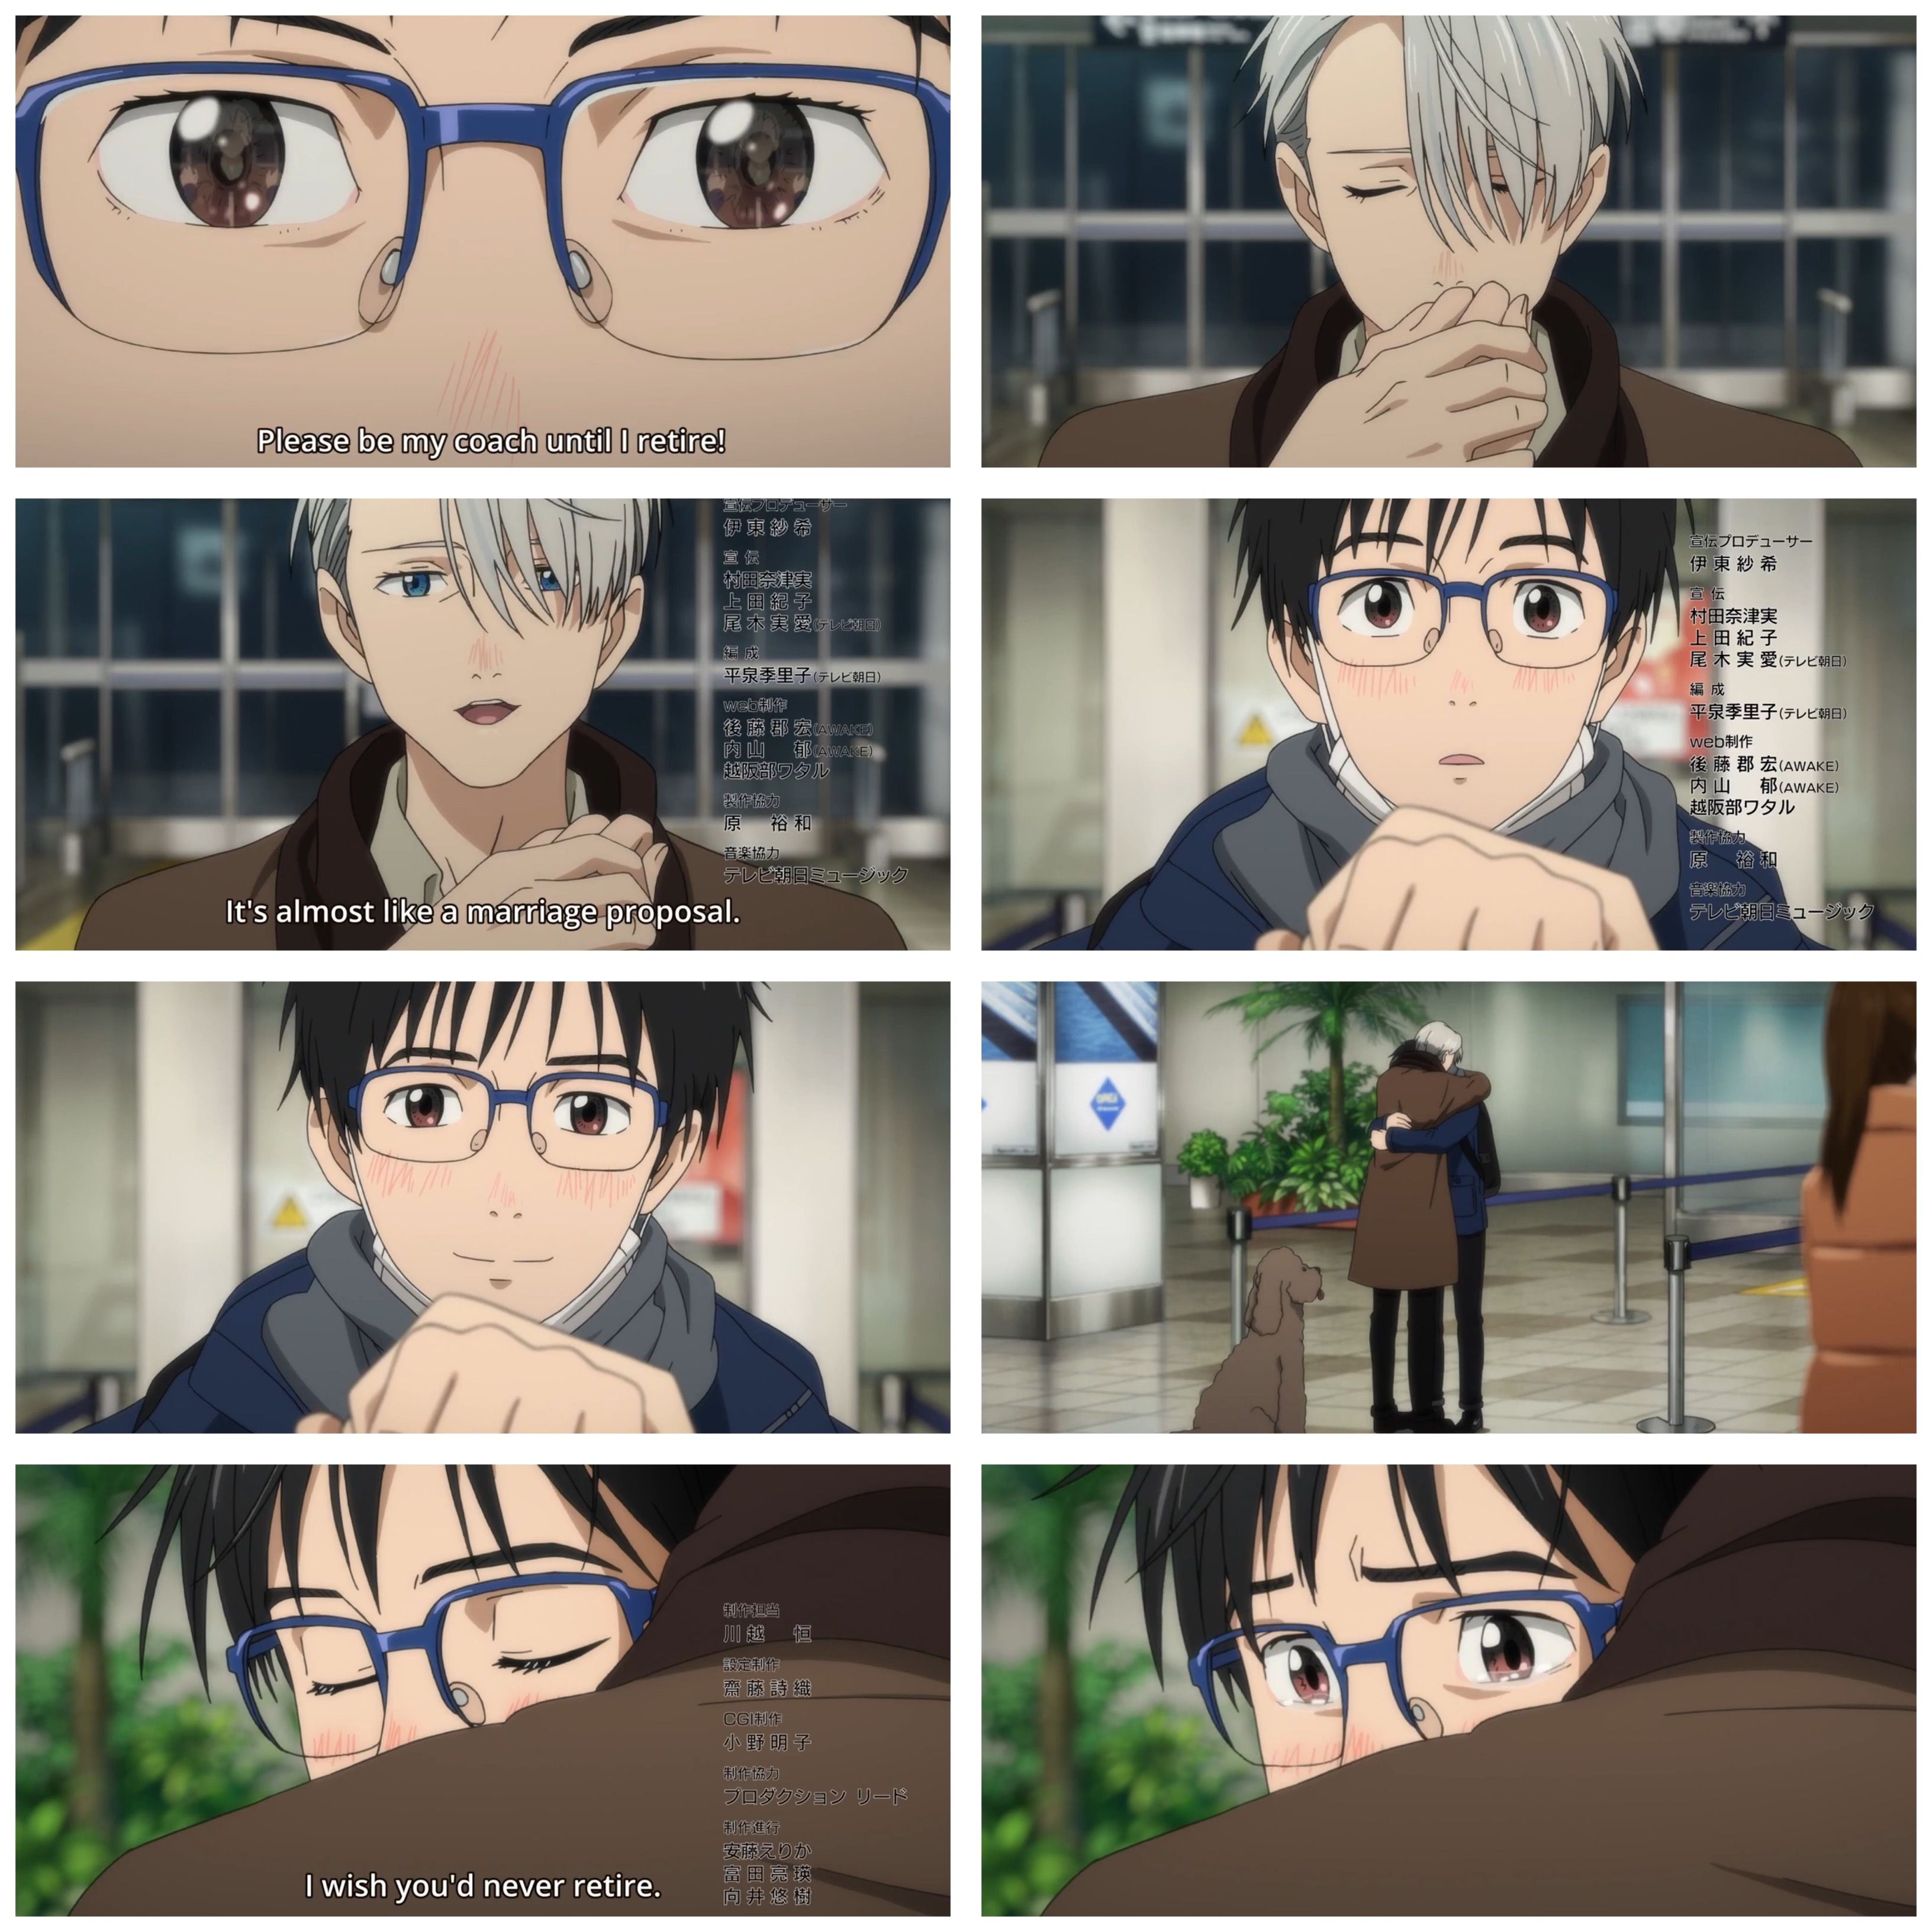 """""""It's almost like a marriage proposal."""" #yoi"""